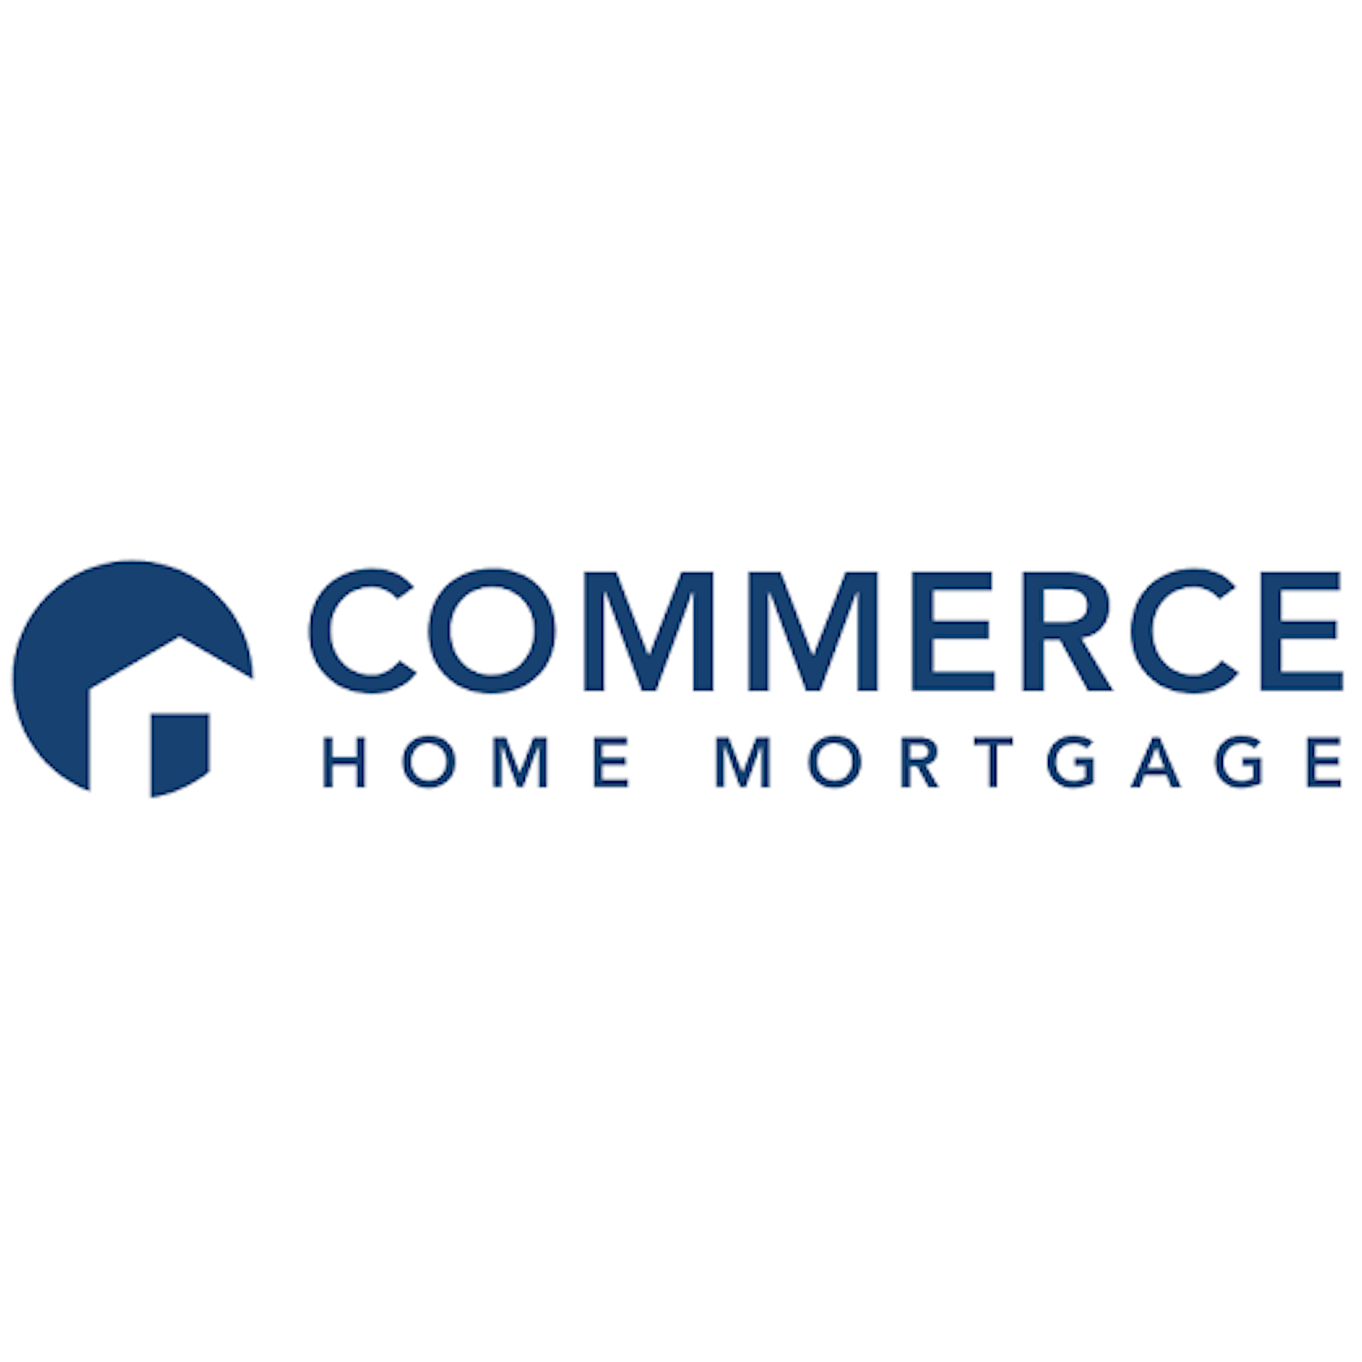 Ryan Lugbauer - Commerce Home Mortgage - San Francisco, CA - Mortgage Brokers & Lenders